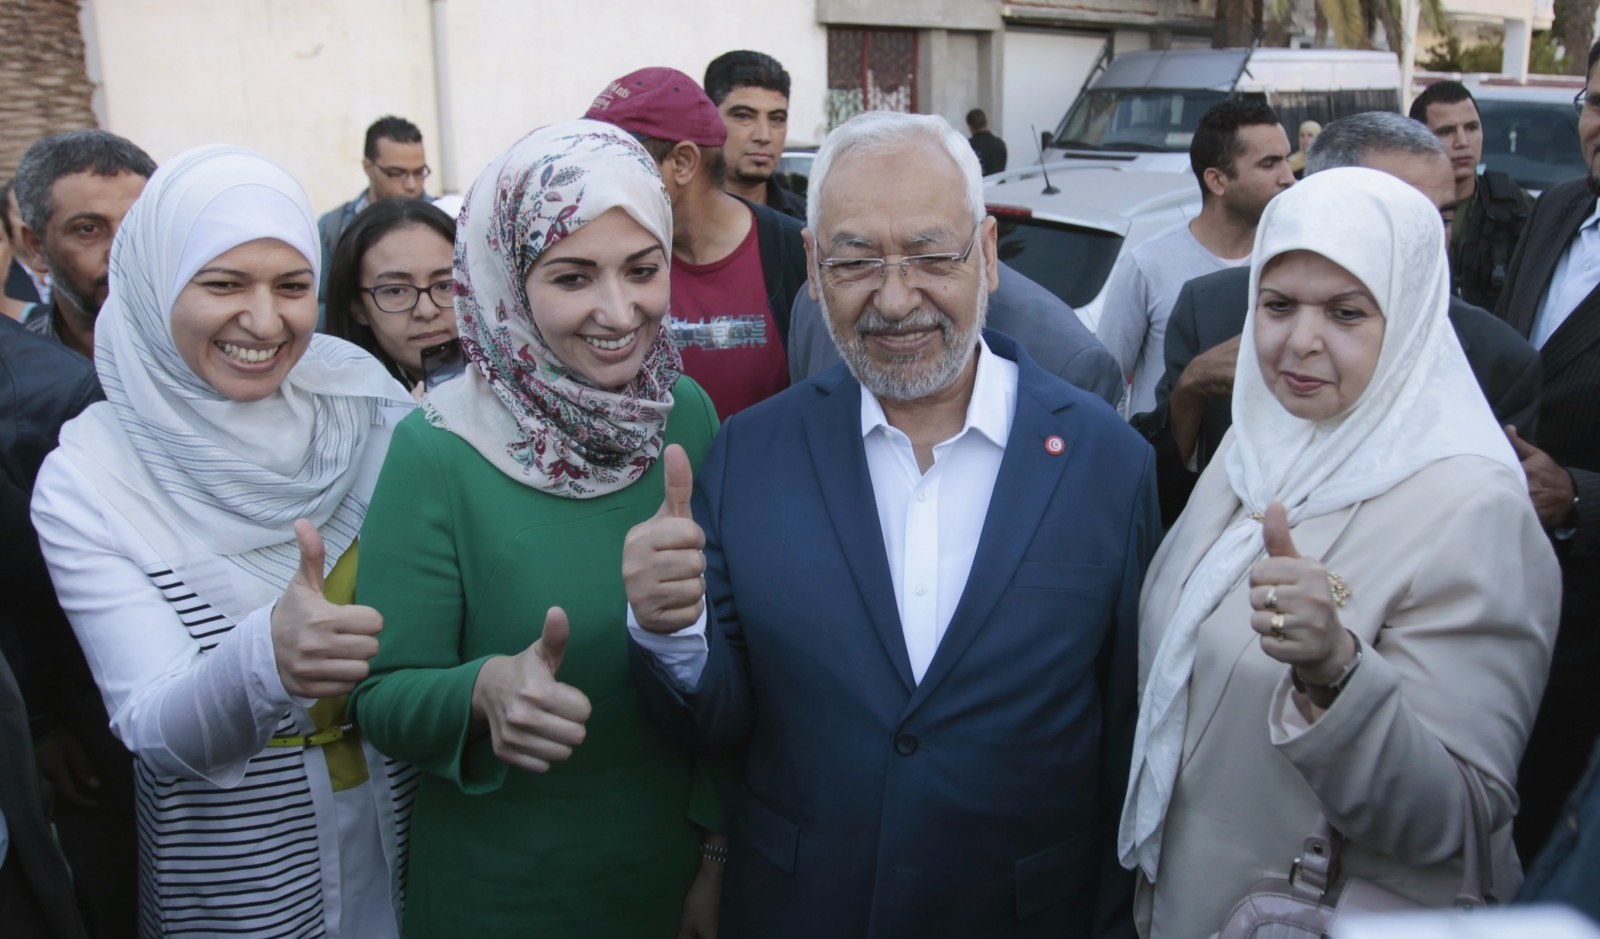 Rached Ghannouchi (C), leader of the Tunisian Islamist party Ennahda, gestures with his wife and two daughters Yousra (L) and Soumaya (2nd L) at a polling station during an election in Tunisia